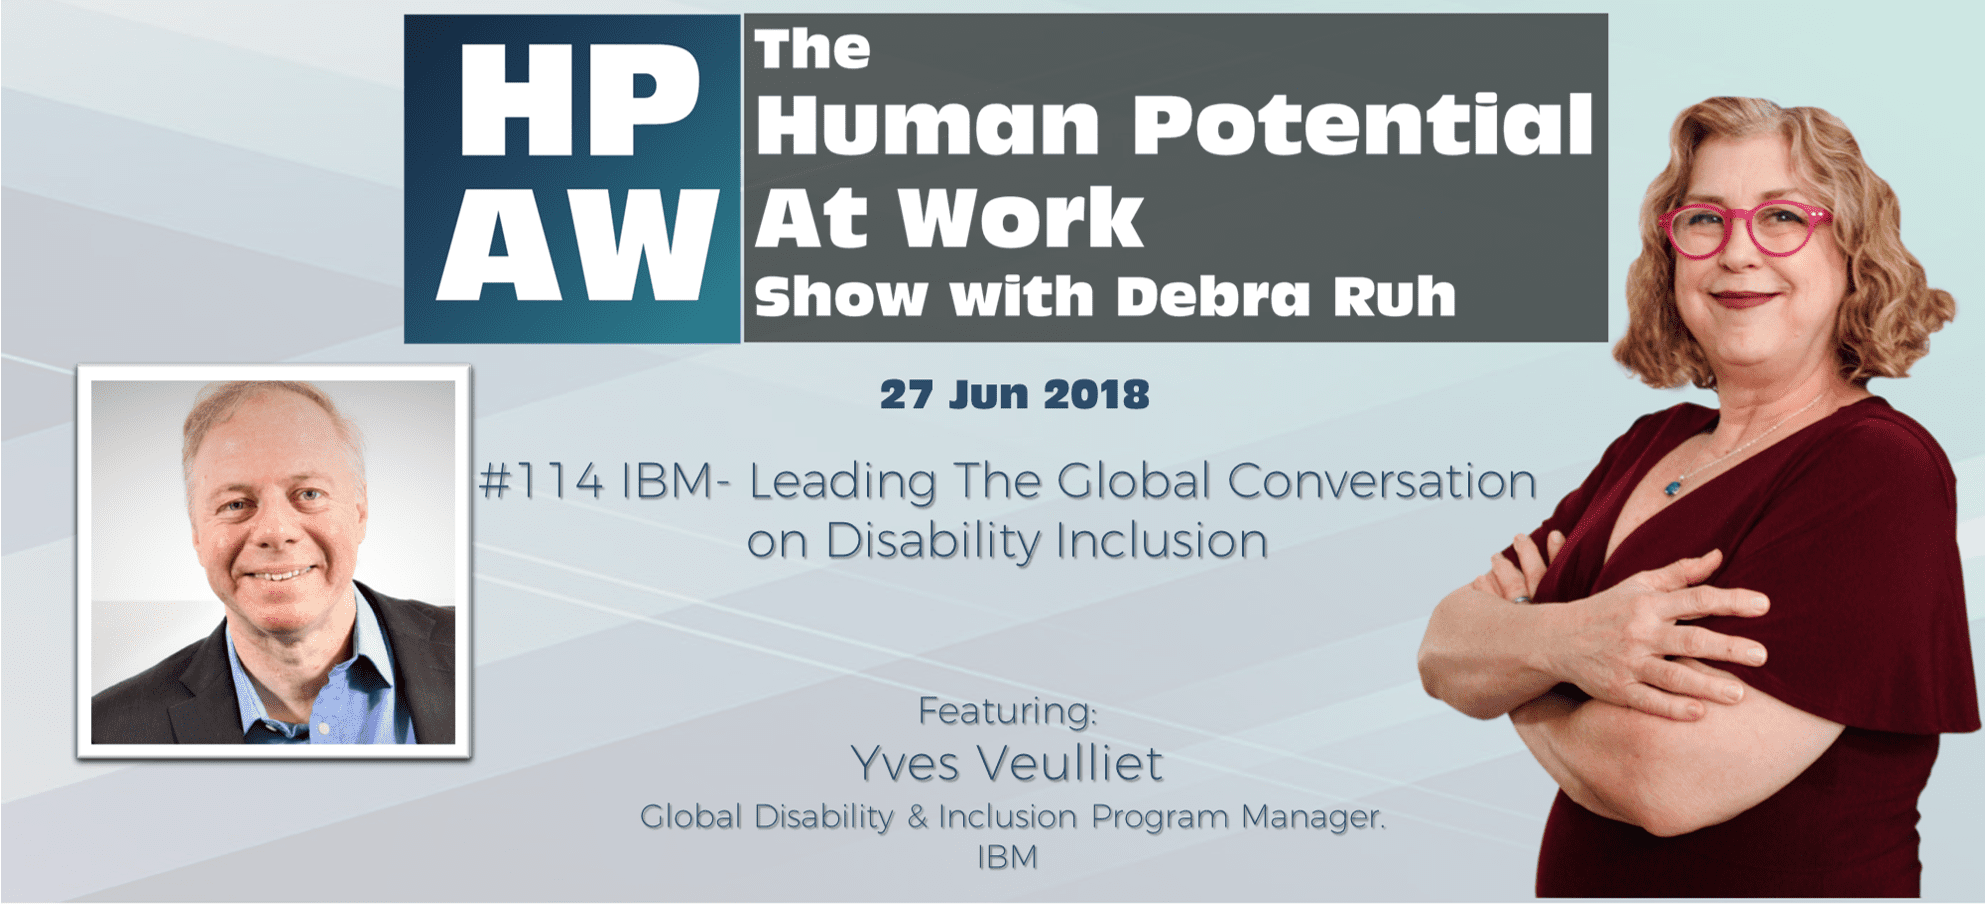 Episode Flyer for #114 IBM- Leading The Global Conversation on Disability Inclusion